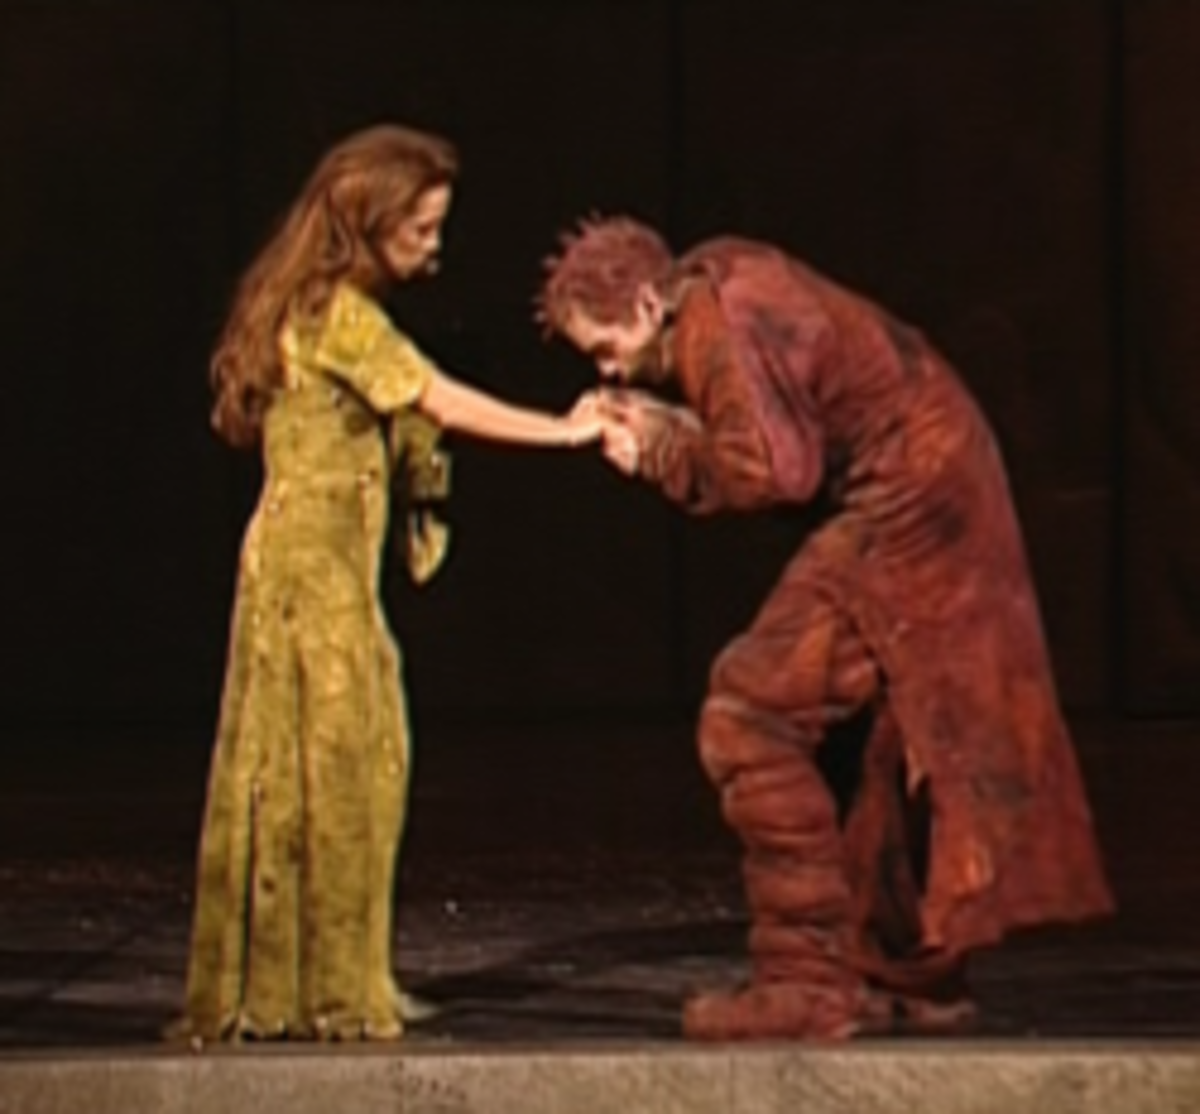 Helene Segara as Esmeralda and Garou as Quaismodo in the 1998 musical Notre Dame de Paris